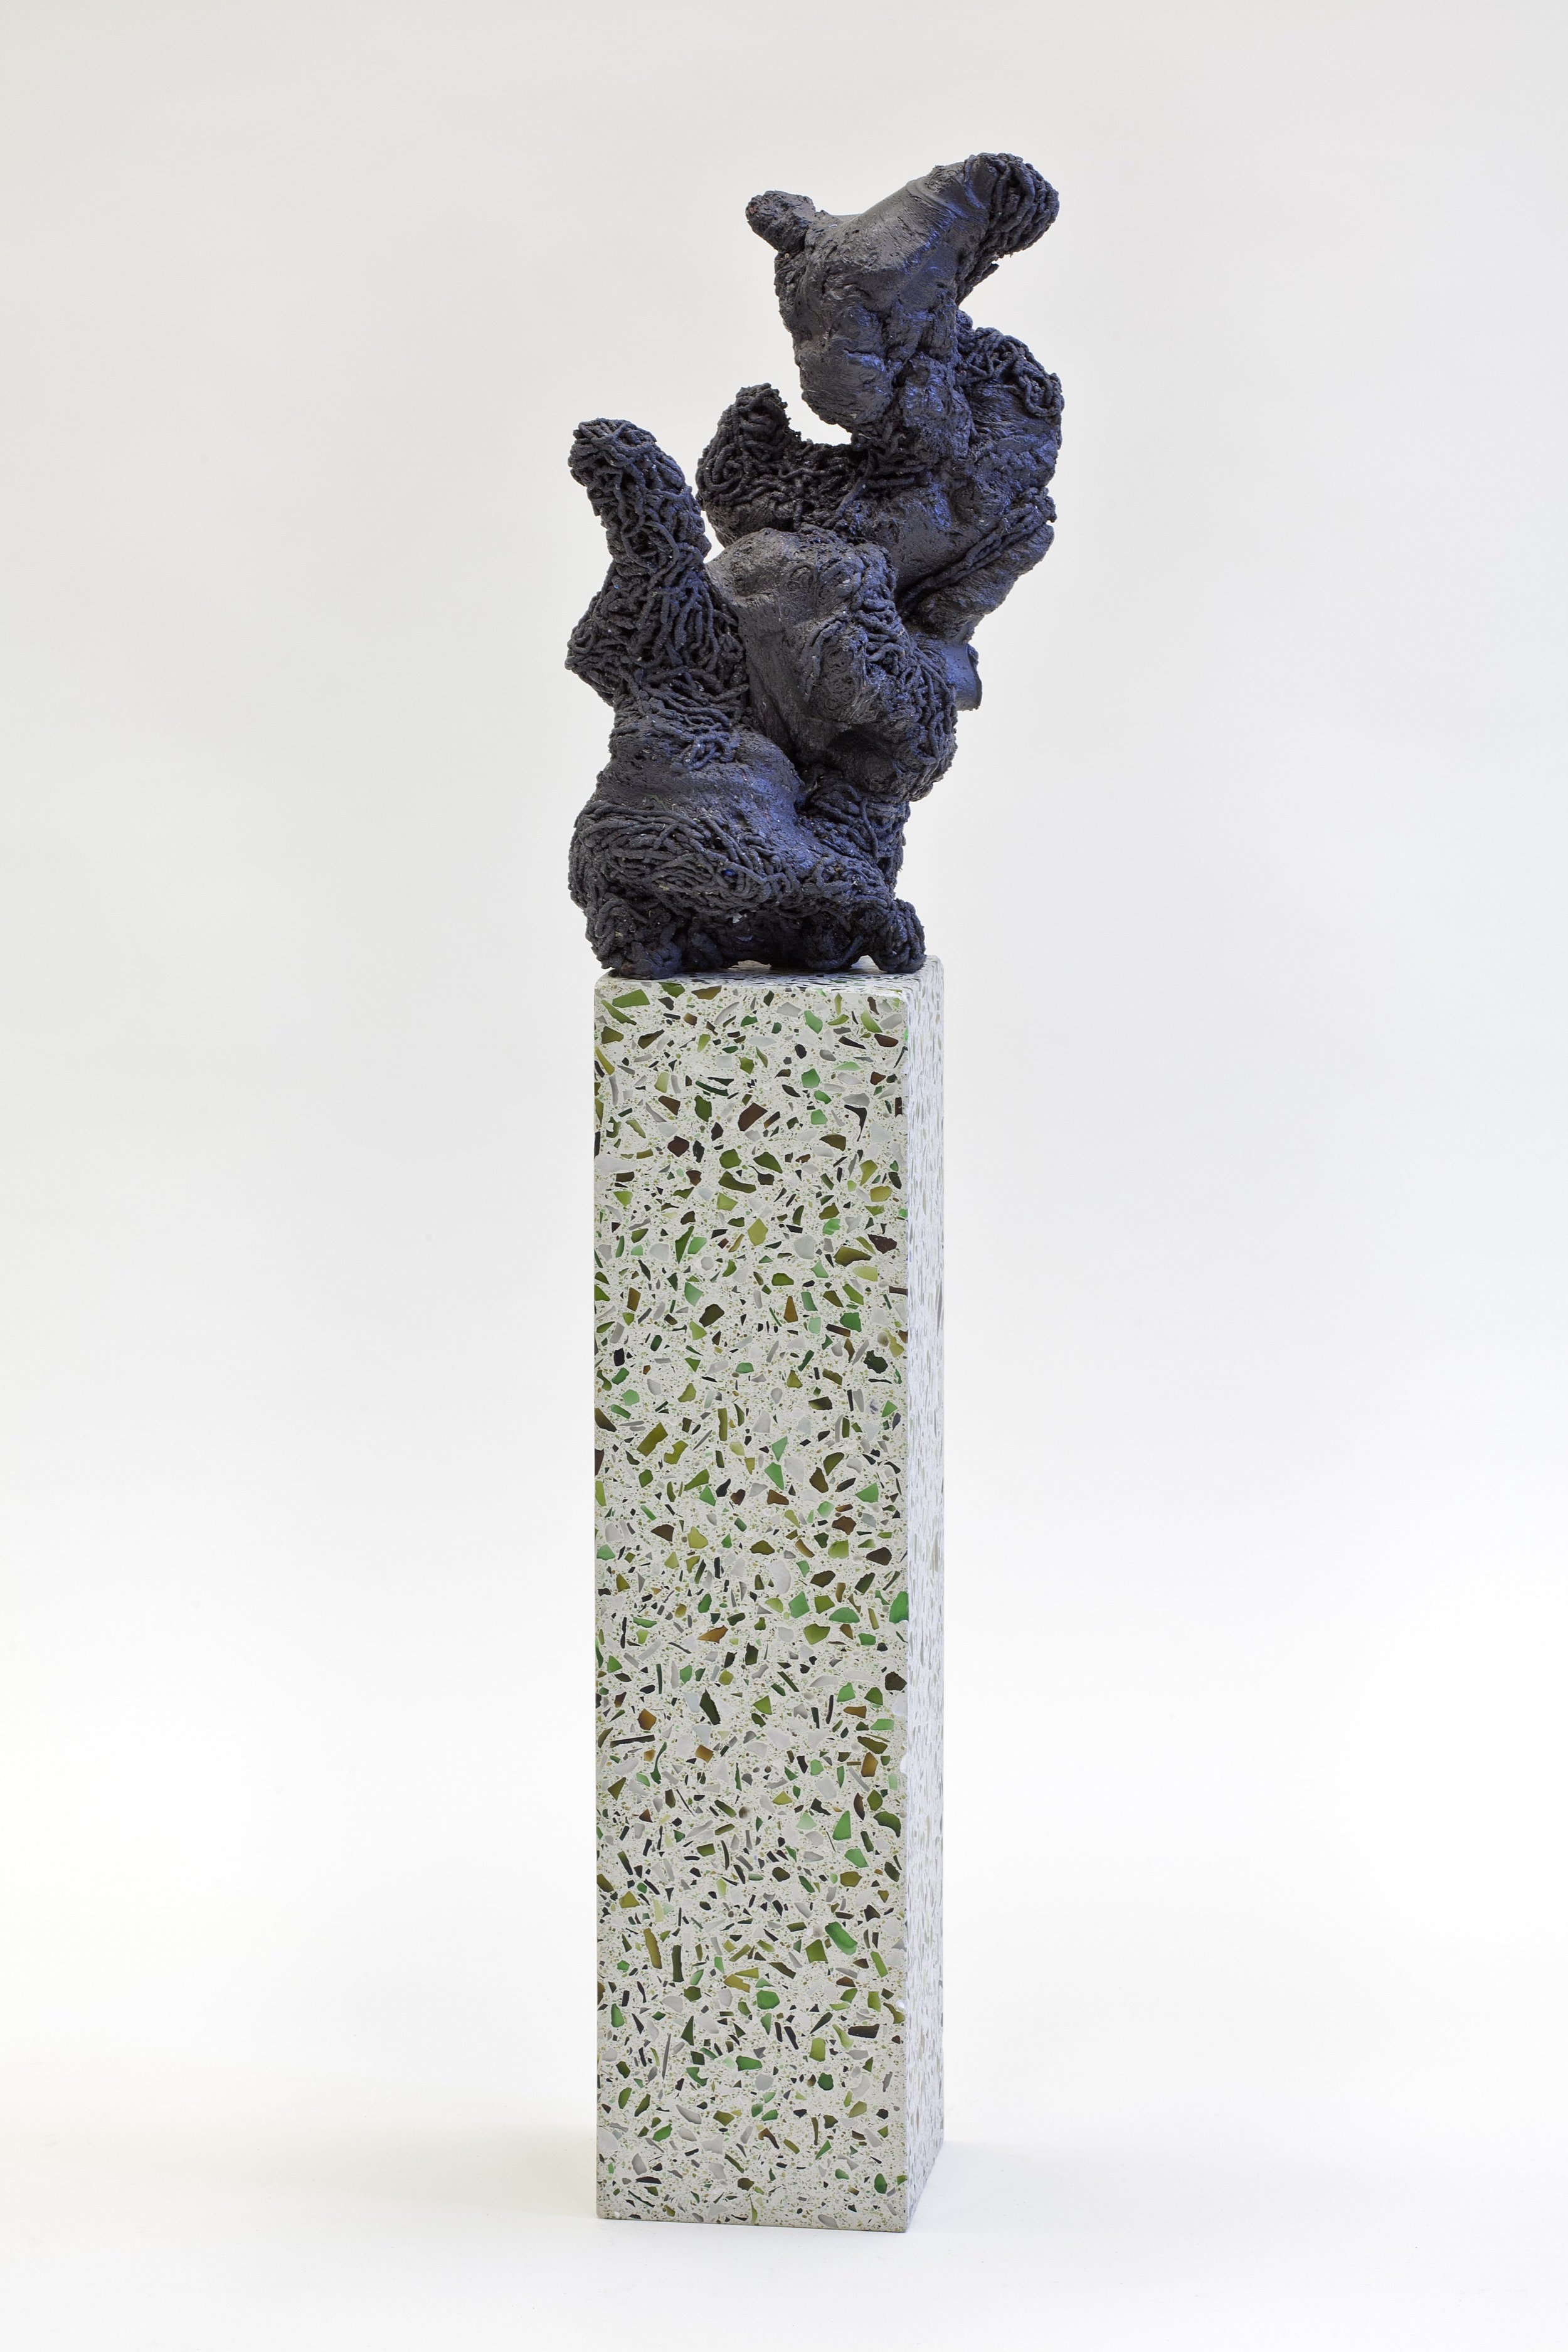 Jan Eric Visser, Untitled (Ruins of Desire II) 2015. Translucent concrete and Aquadyne, 100 x 24 x 22 cm. Special thanks to: Eindhoven University of Technology and Center for Visual Arts Rotterdam. Photo: W. Vermaase